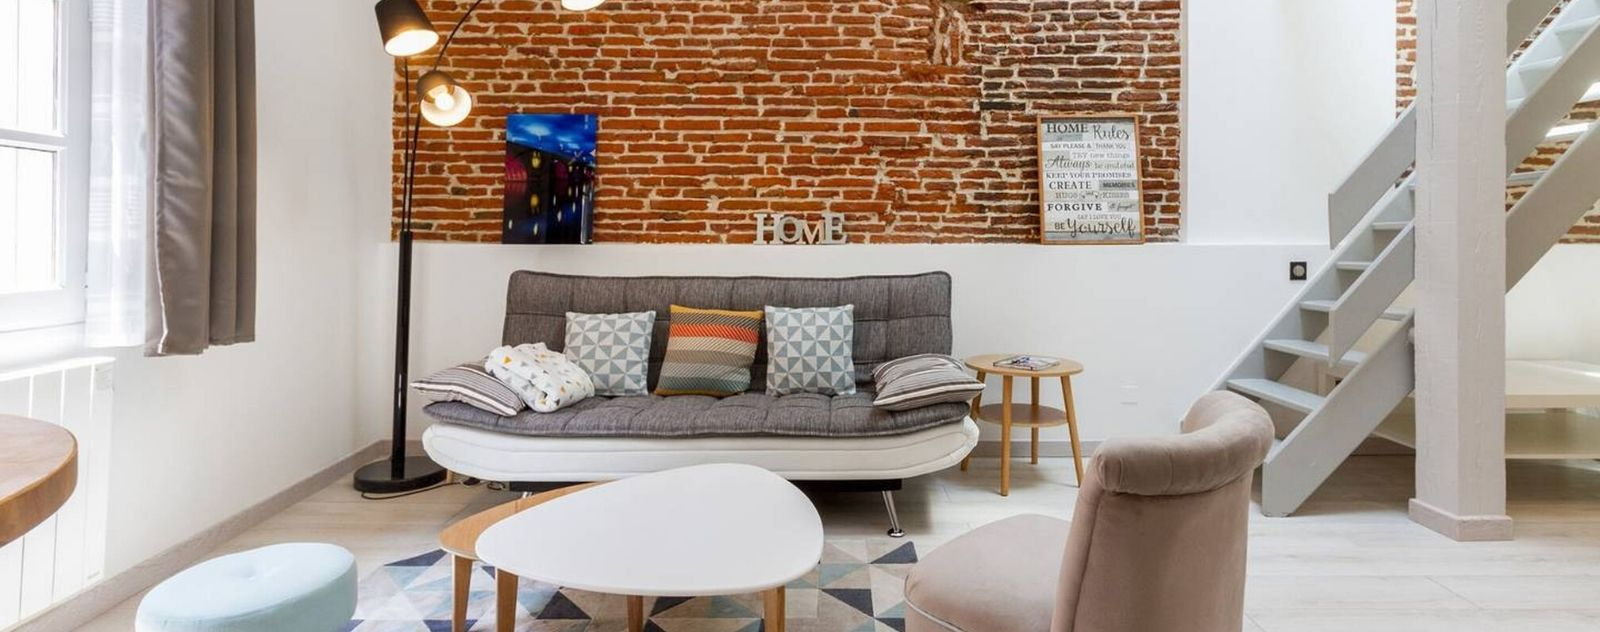 appart hotel toulouse carmes